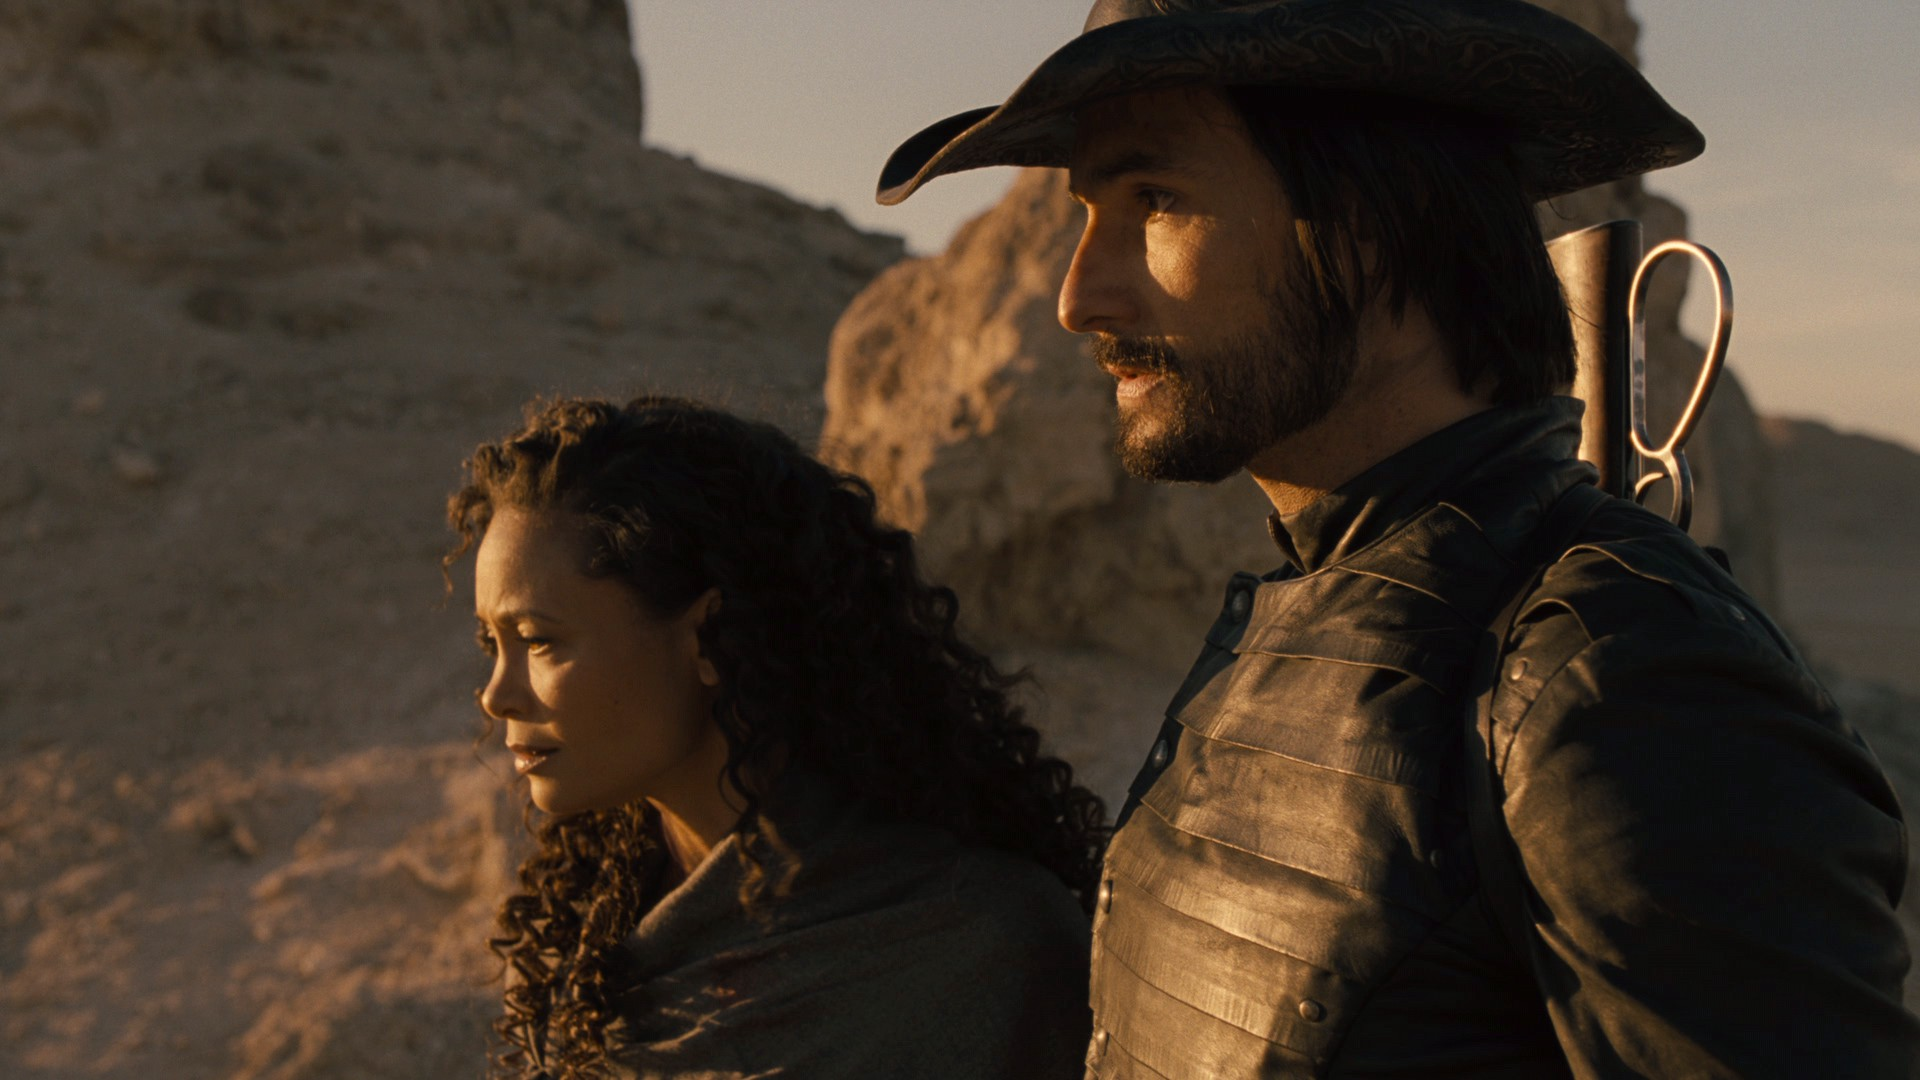 22276c1dbe8 The biggest questions left behind after the season 2 Westworld finale. New  ...